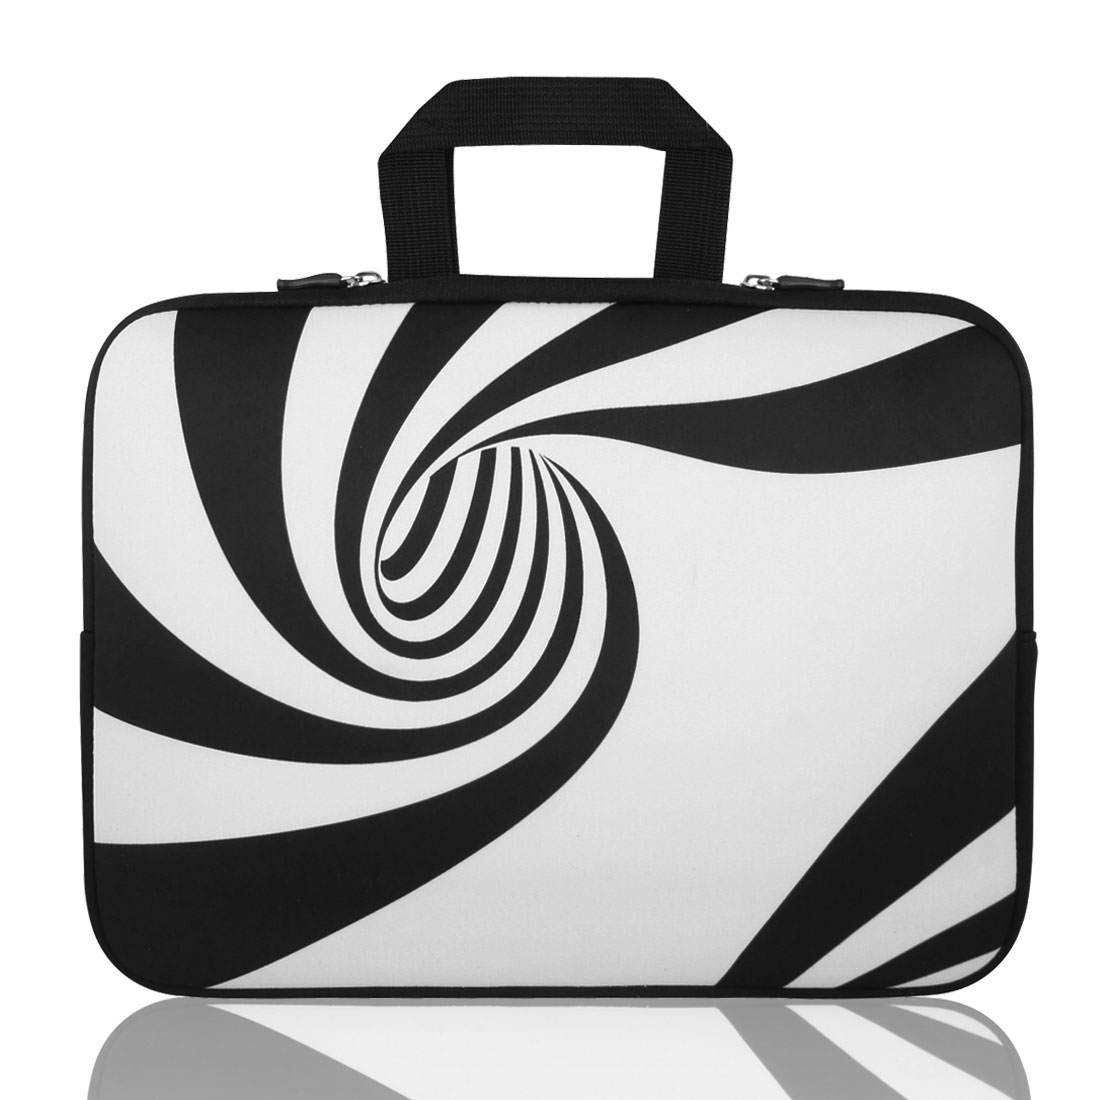 "15"" 15.4"" 15.6"" Black White Swirl Laptop Sleeve Handle Bag Pouch for Asus"